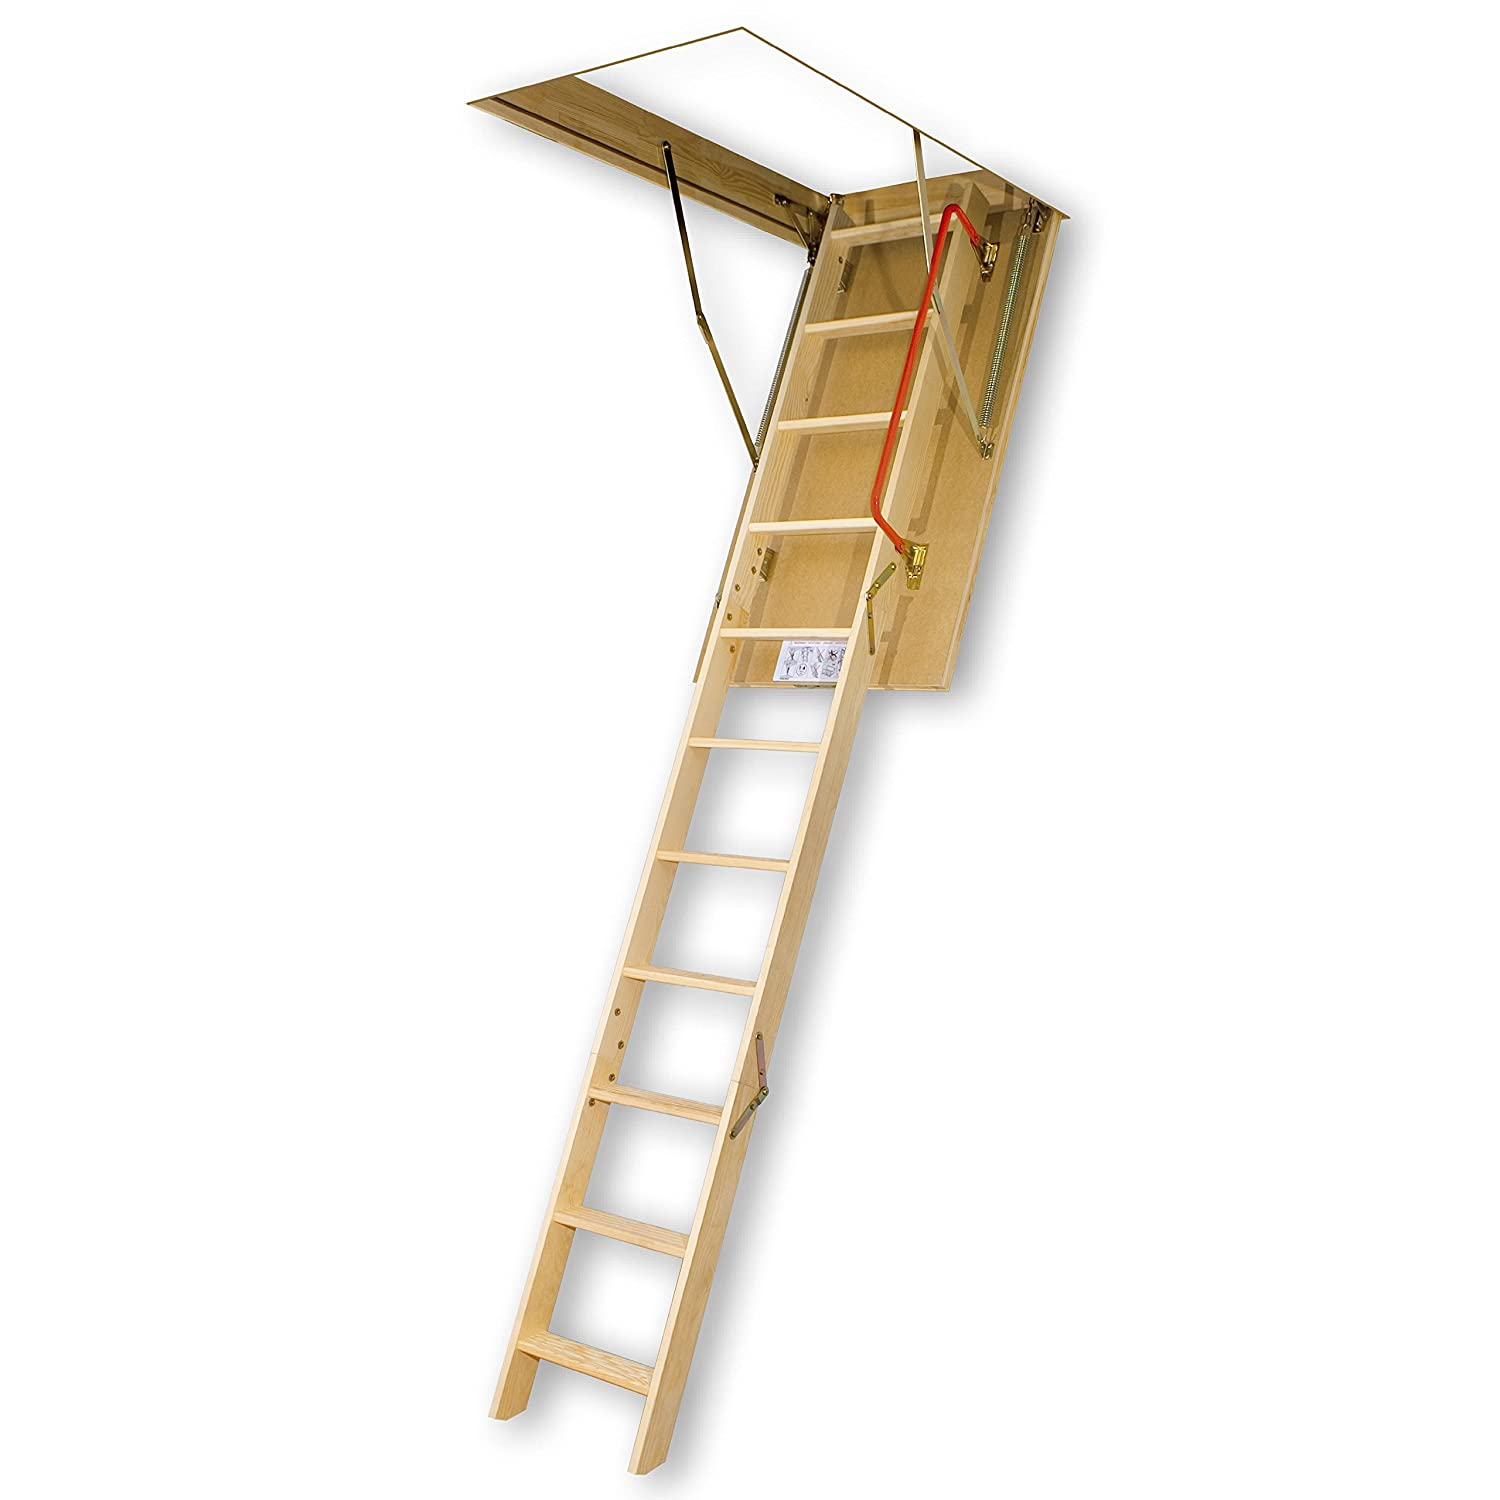 FAKRO LWS-PL 66855 Insulated Attic Ladder for 30-Inch x 54-Inch Rough Openings